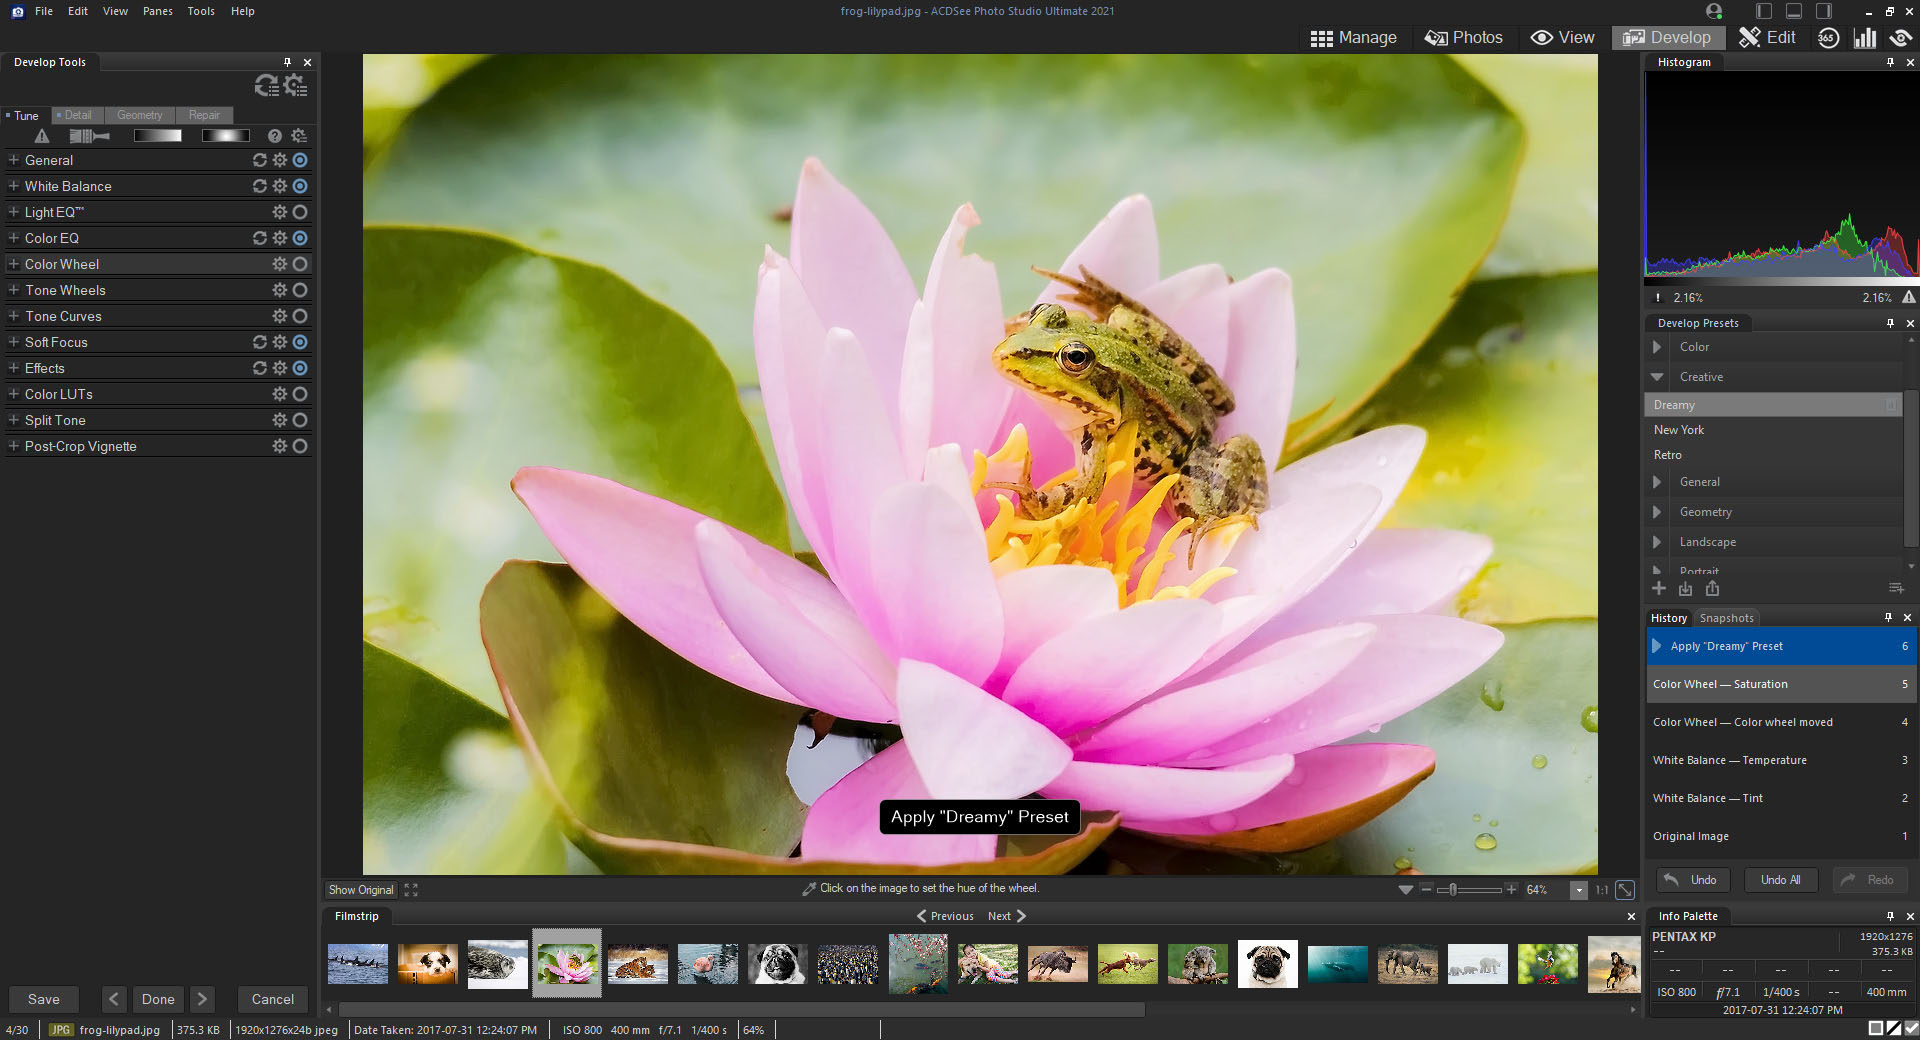 ACDSee Photo Studio Ultimate 2021 announced, promising faster performance  and new features: Digital Photography Review